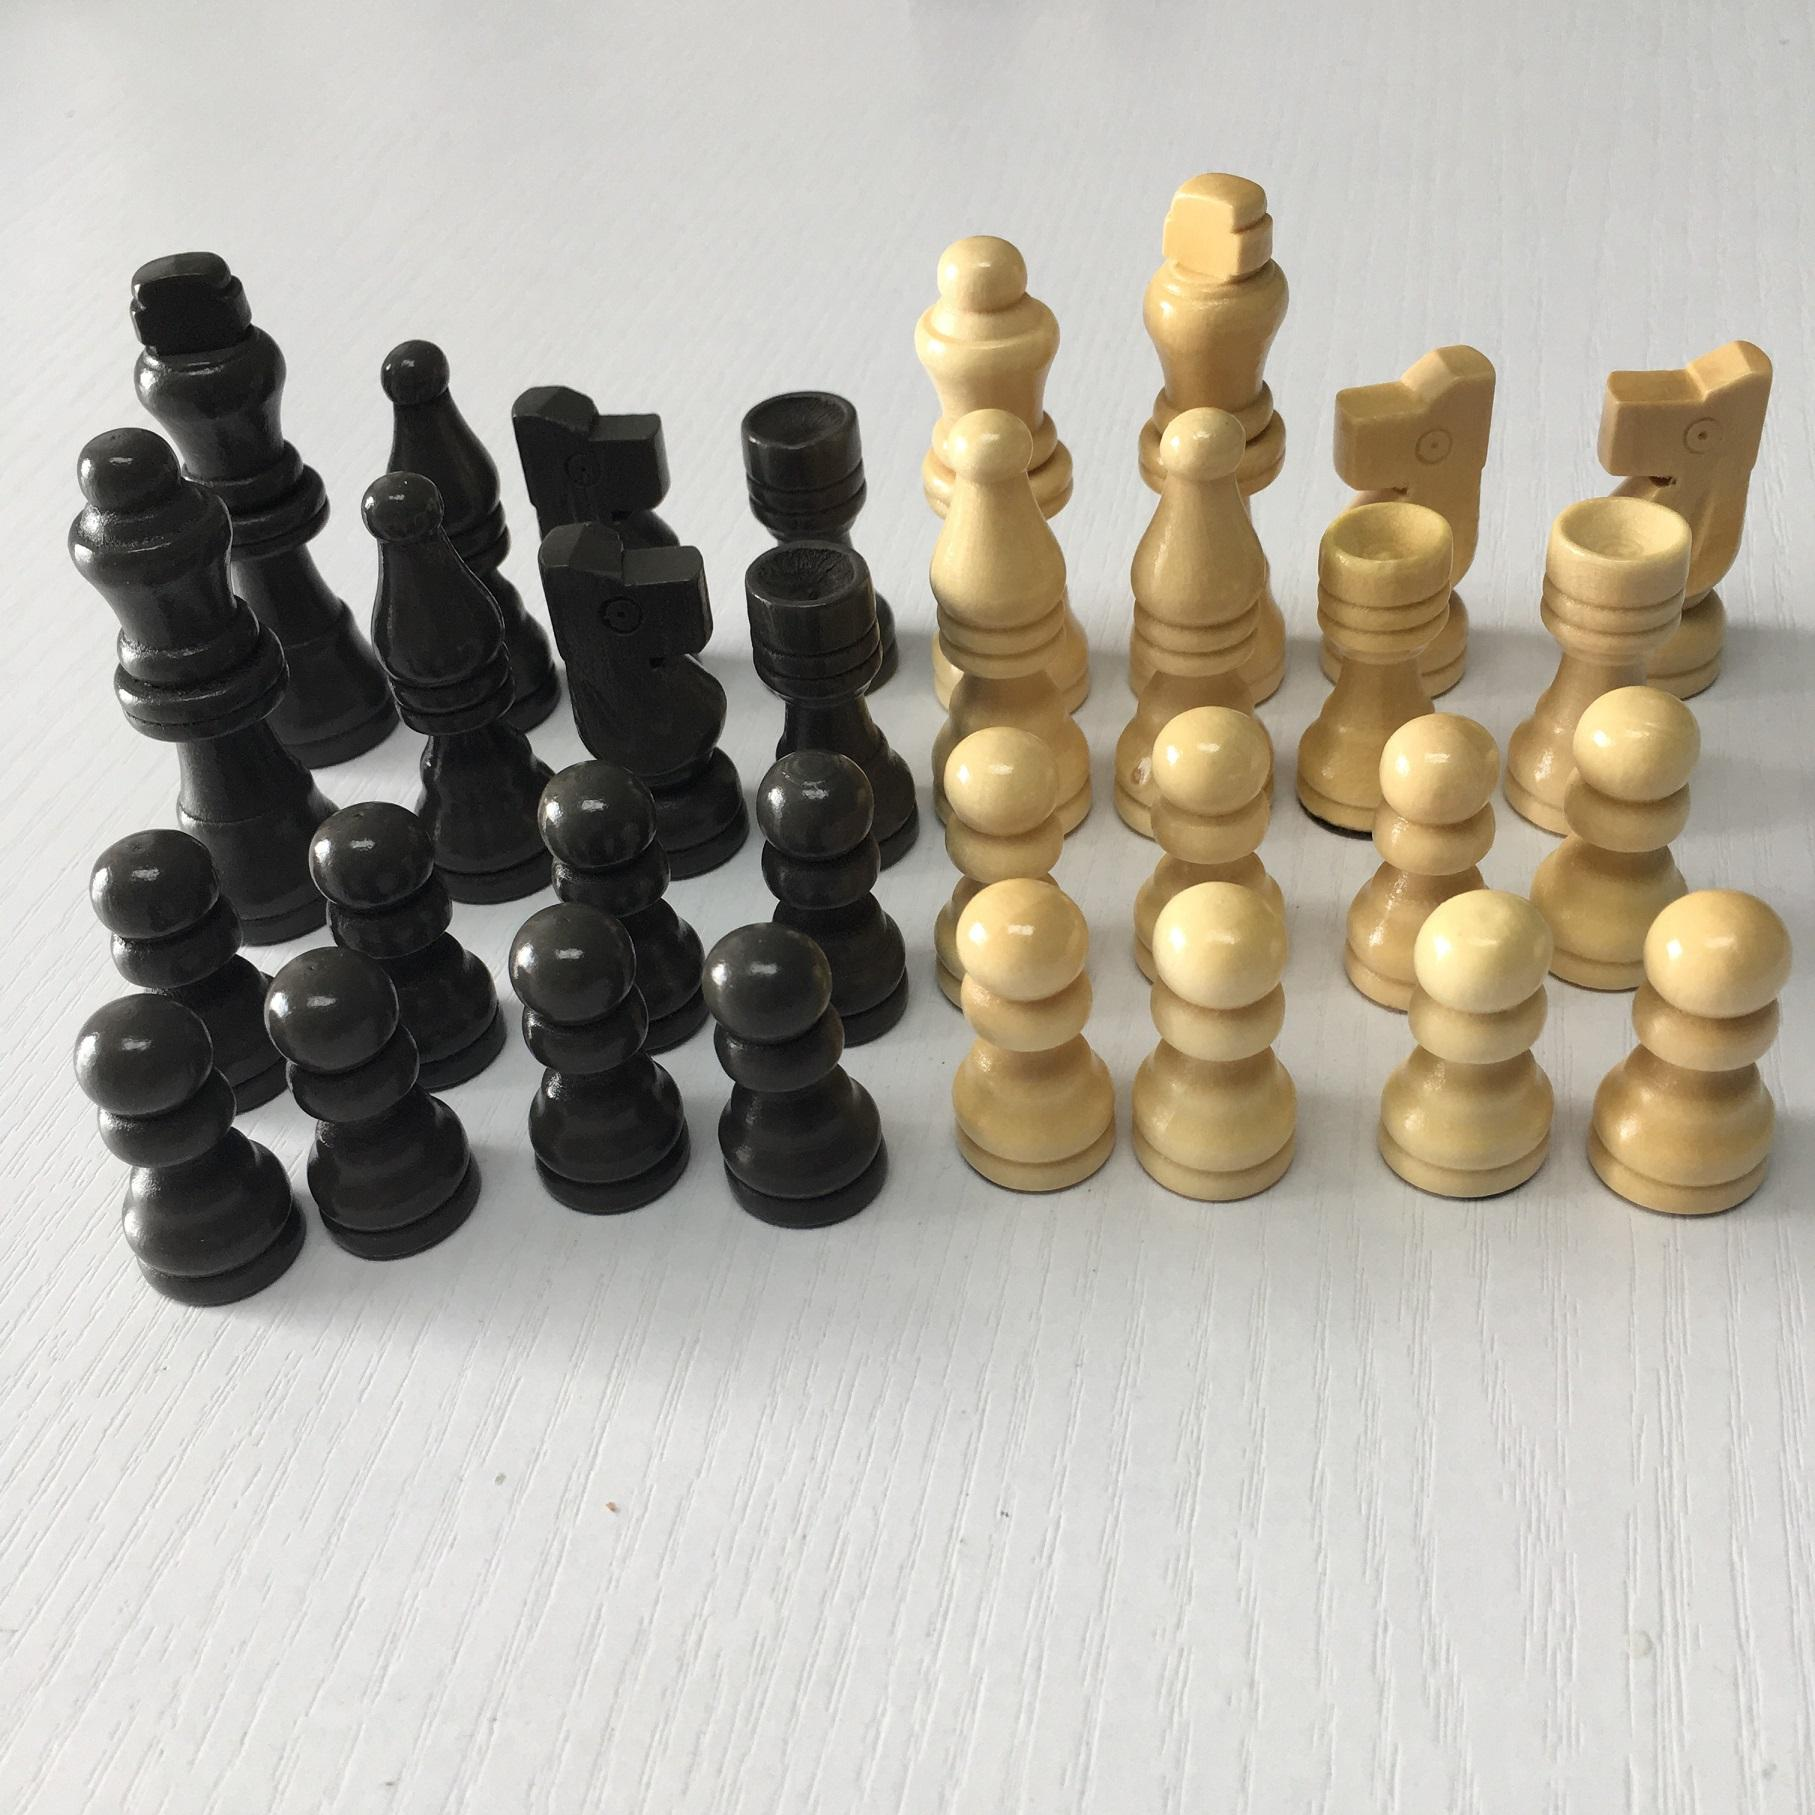 wholesale 2..5inches wooden chess pieces with padded felt